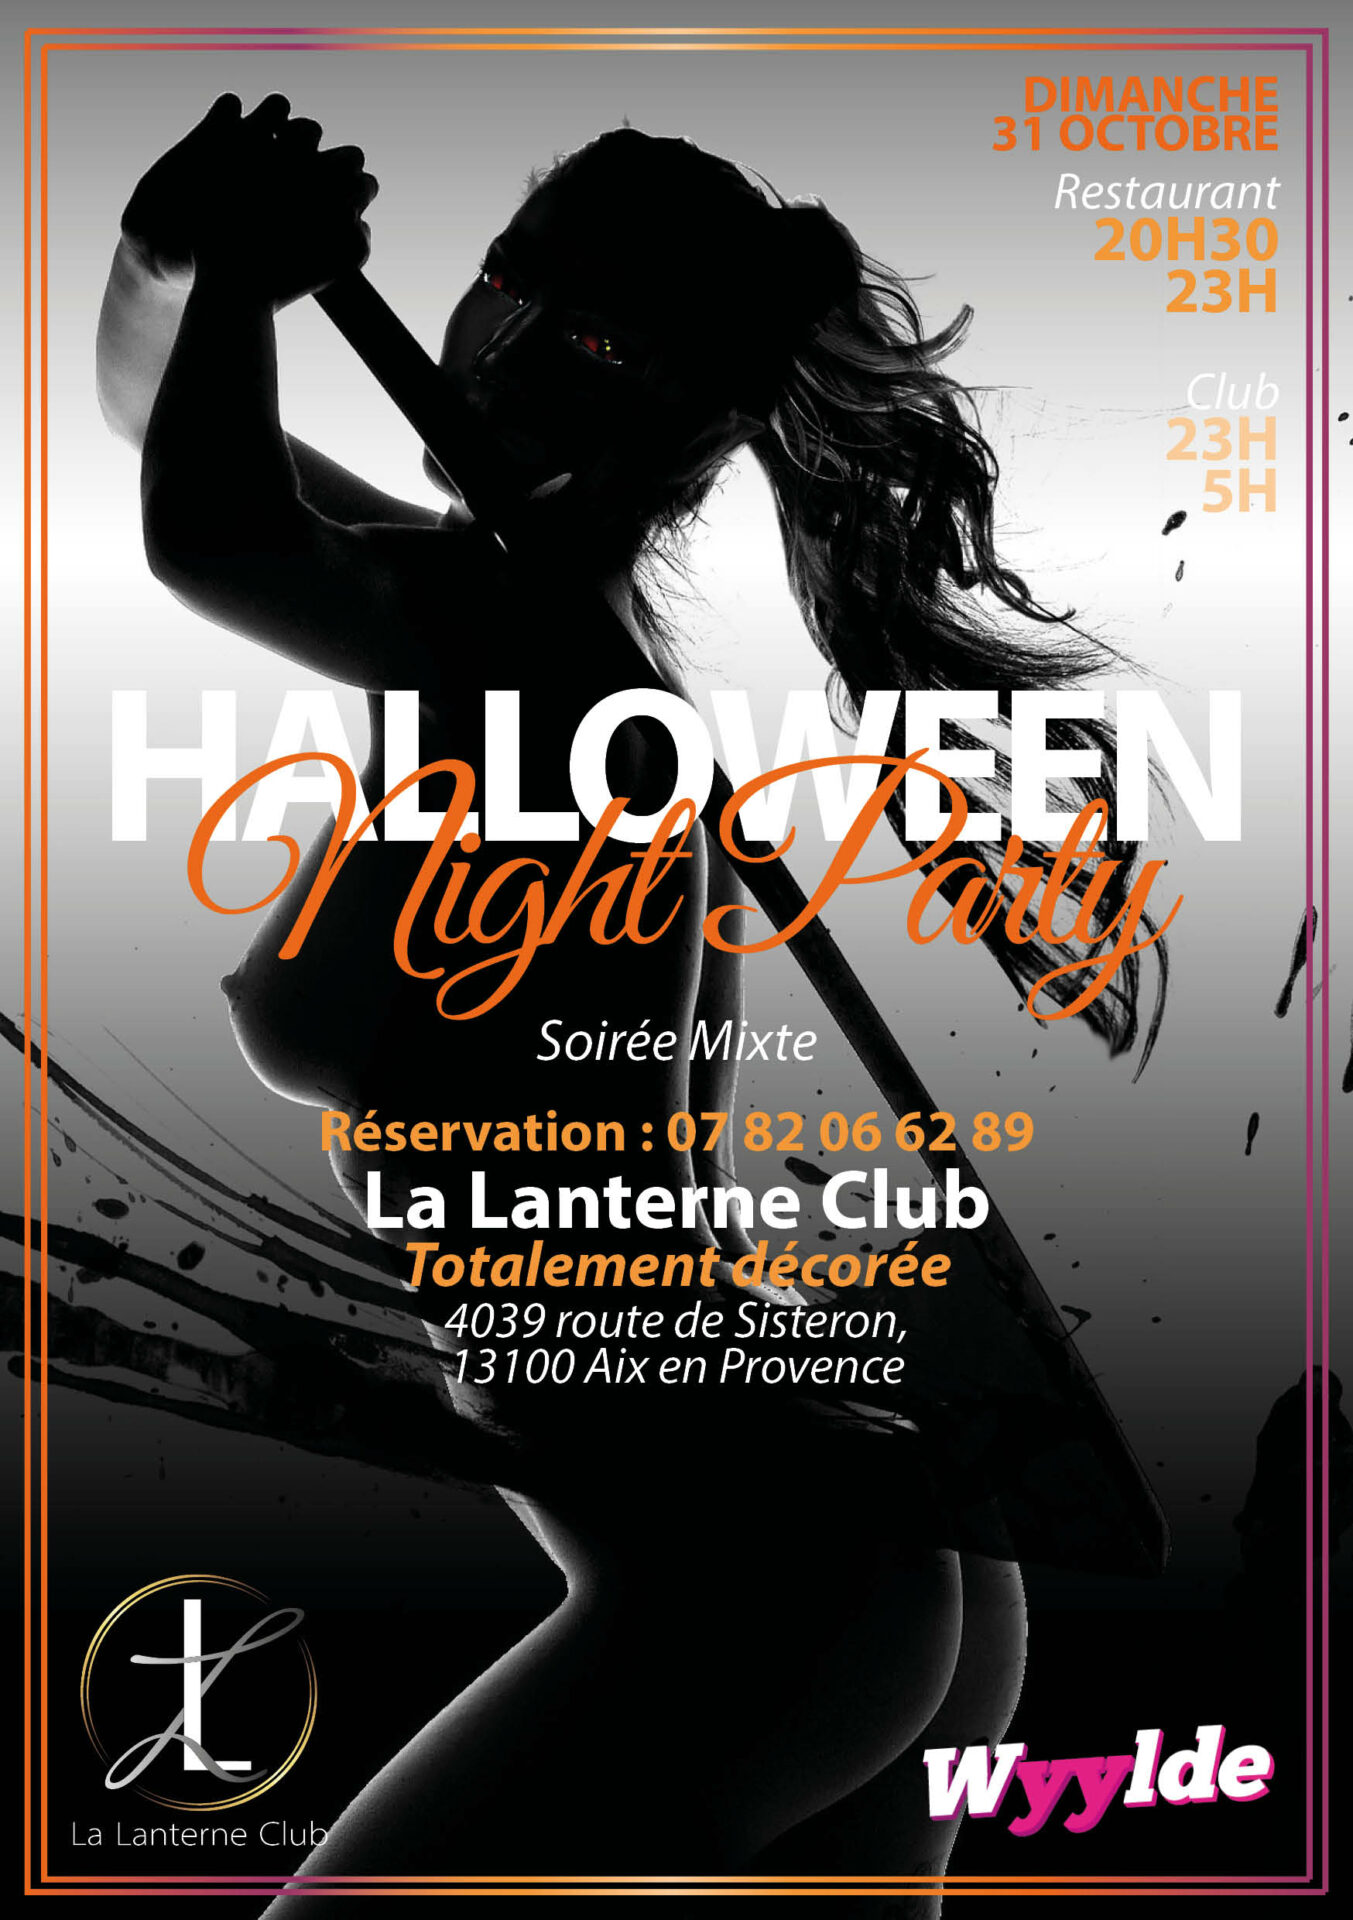 soiree mixte speciale dimanche Halloween Night Party